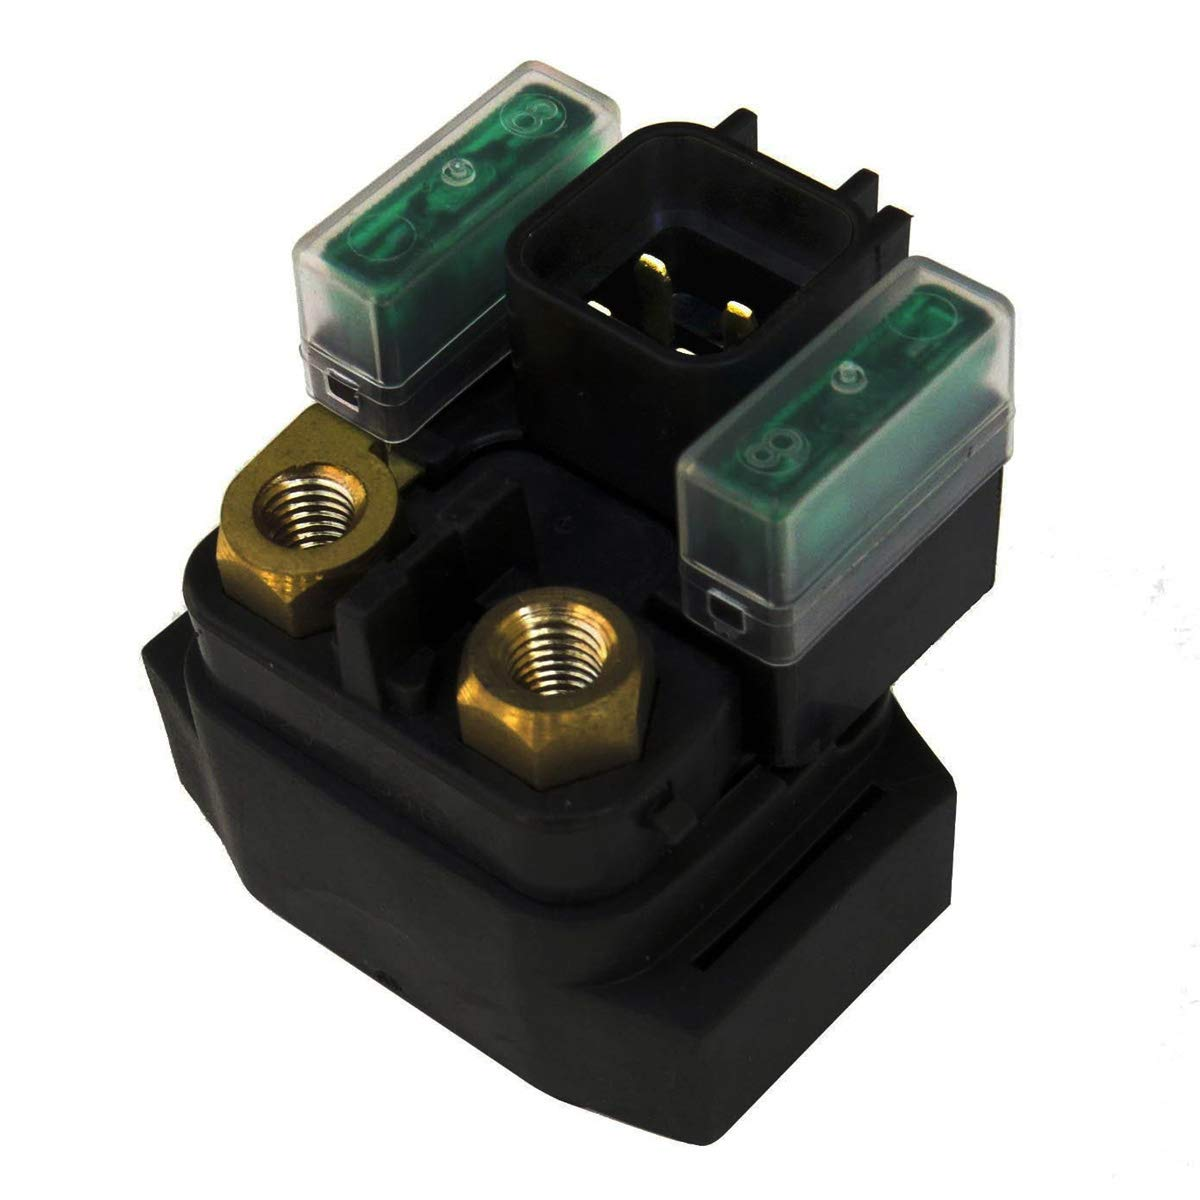 Amhousejoy Starter Solenoid Relay Fits for Suzuki 250 LT-F250 Quad Runner Ozark 2003 2004 2005 2006 2007 2008 2009